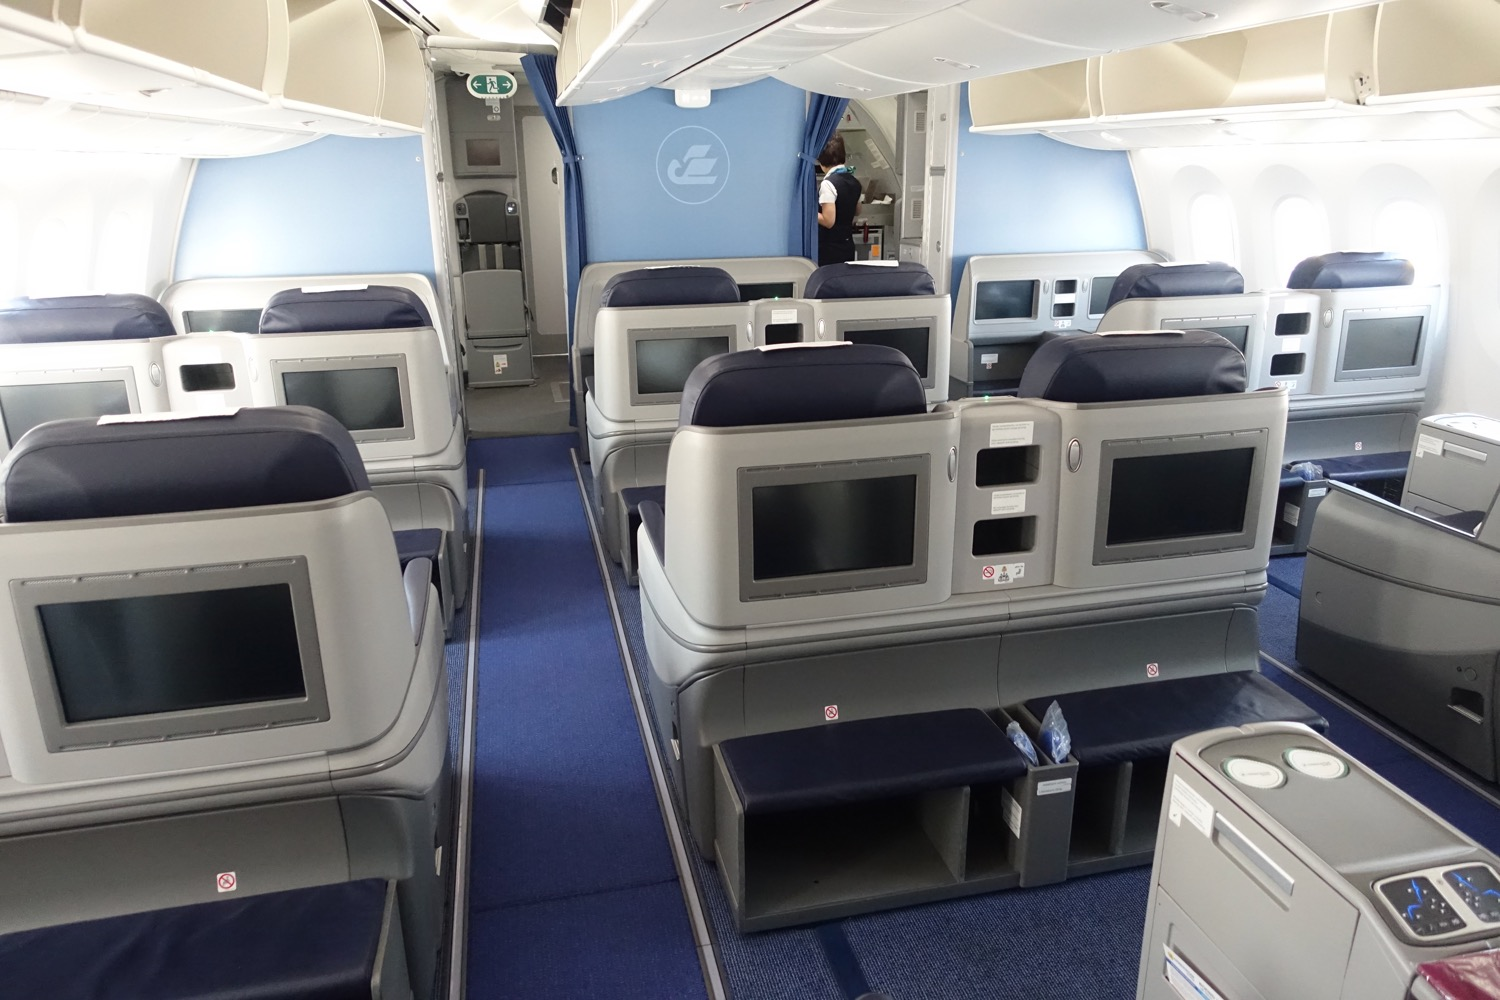 Uzbekistan Airways 787 Business Class Review